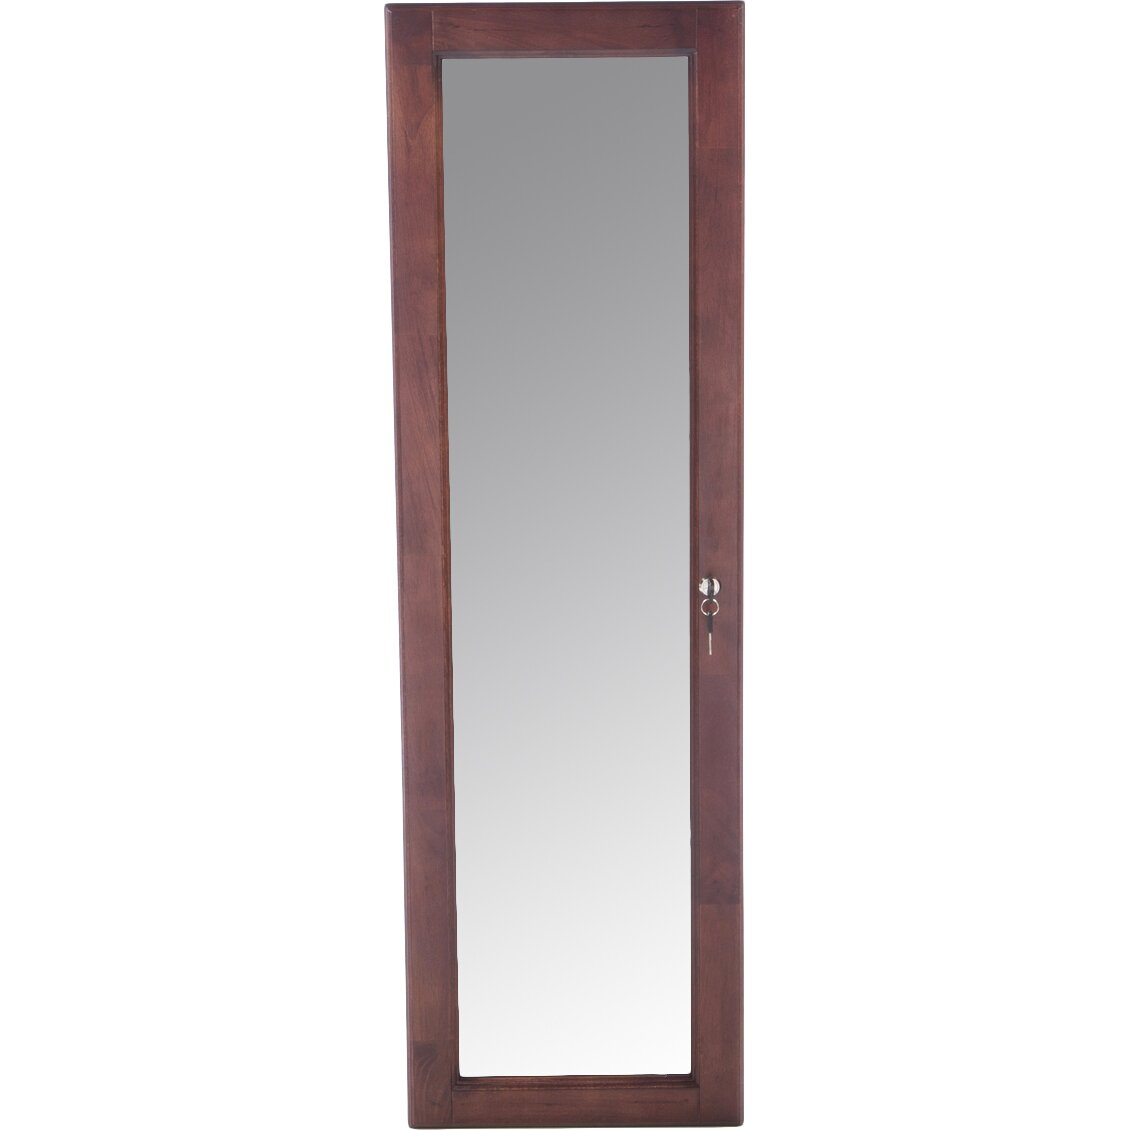 Varvara Wall Mounted Jewelry Armoire with Mirror | Wayfair